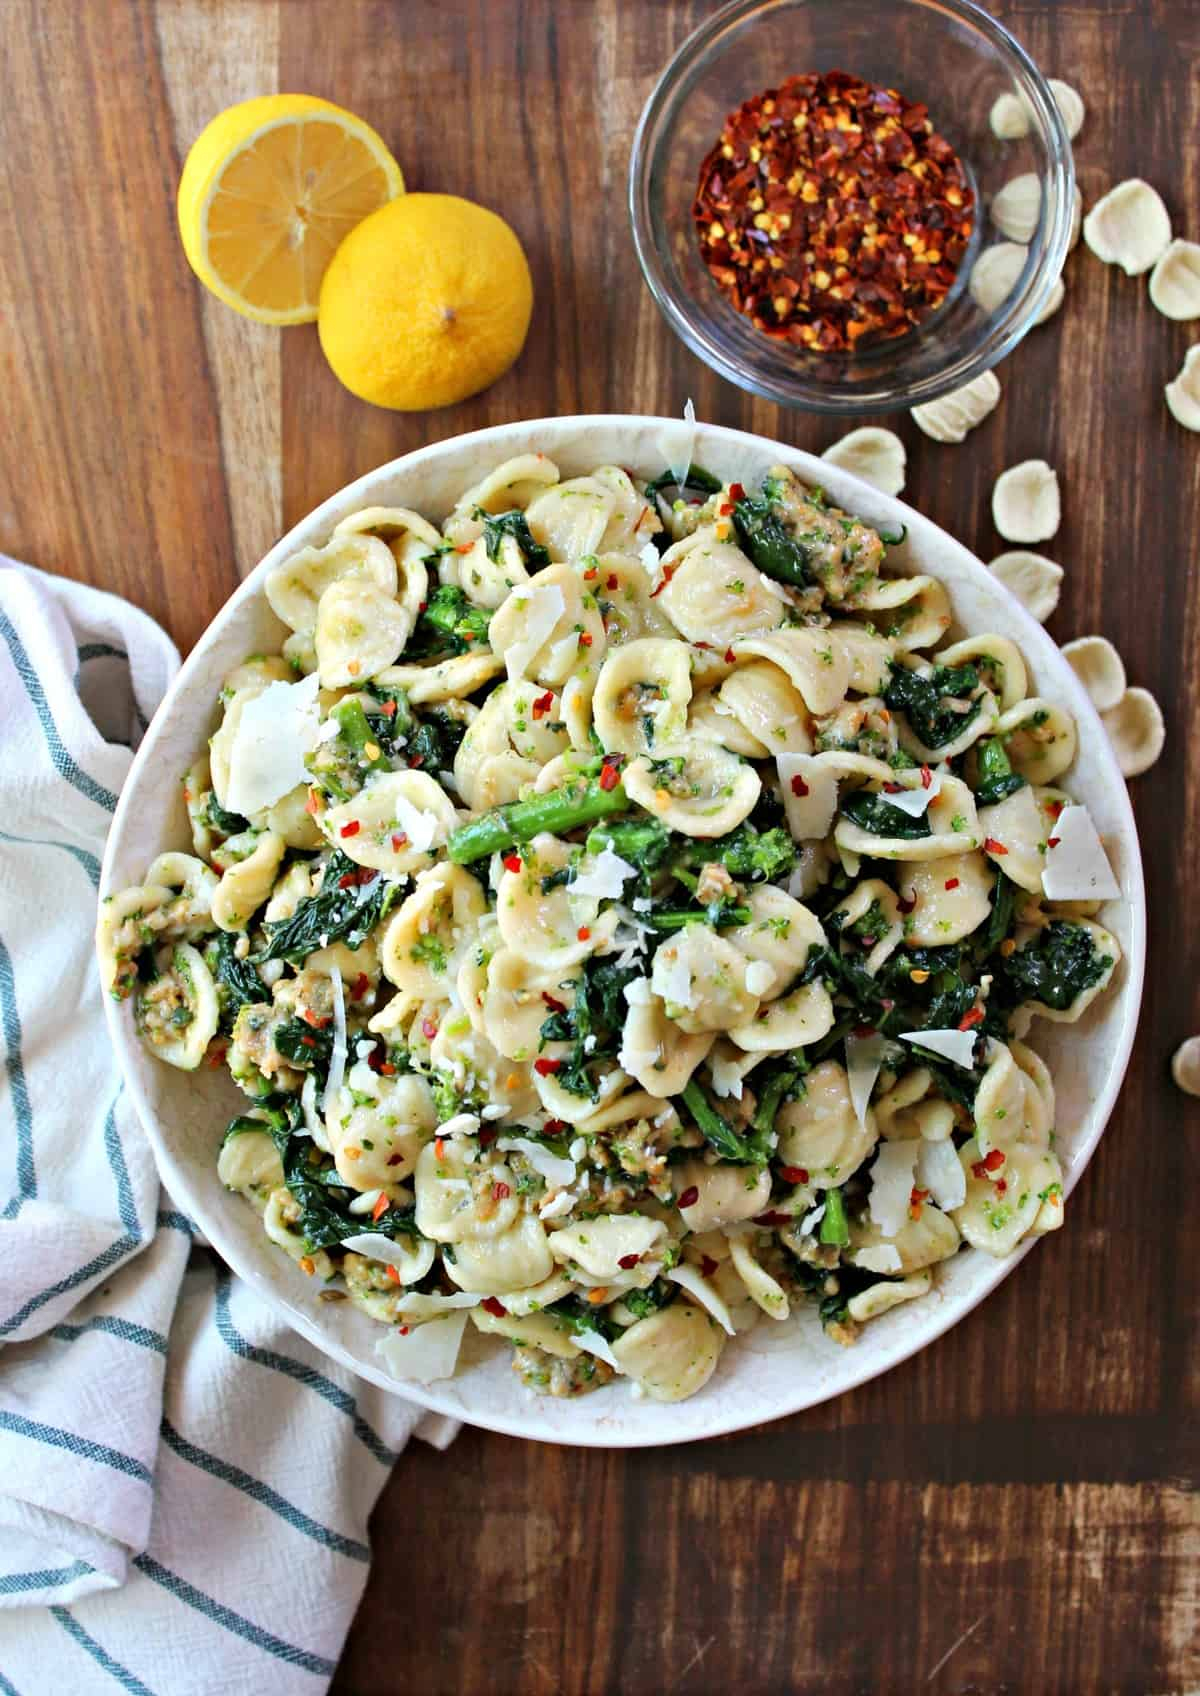 Tender Orecchiette Pasta combined with hearty sausage and broccoli rabe is a flavorful, simple weeknight dish